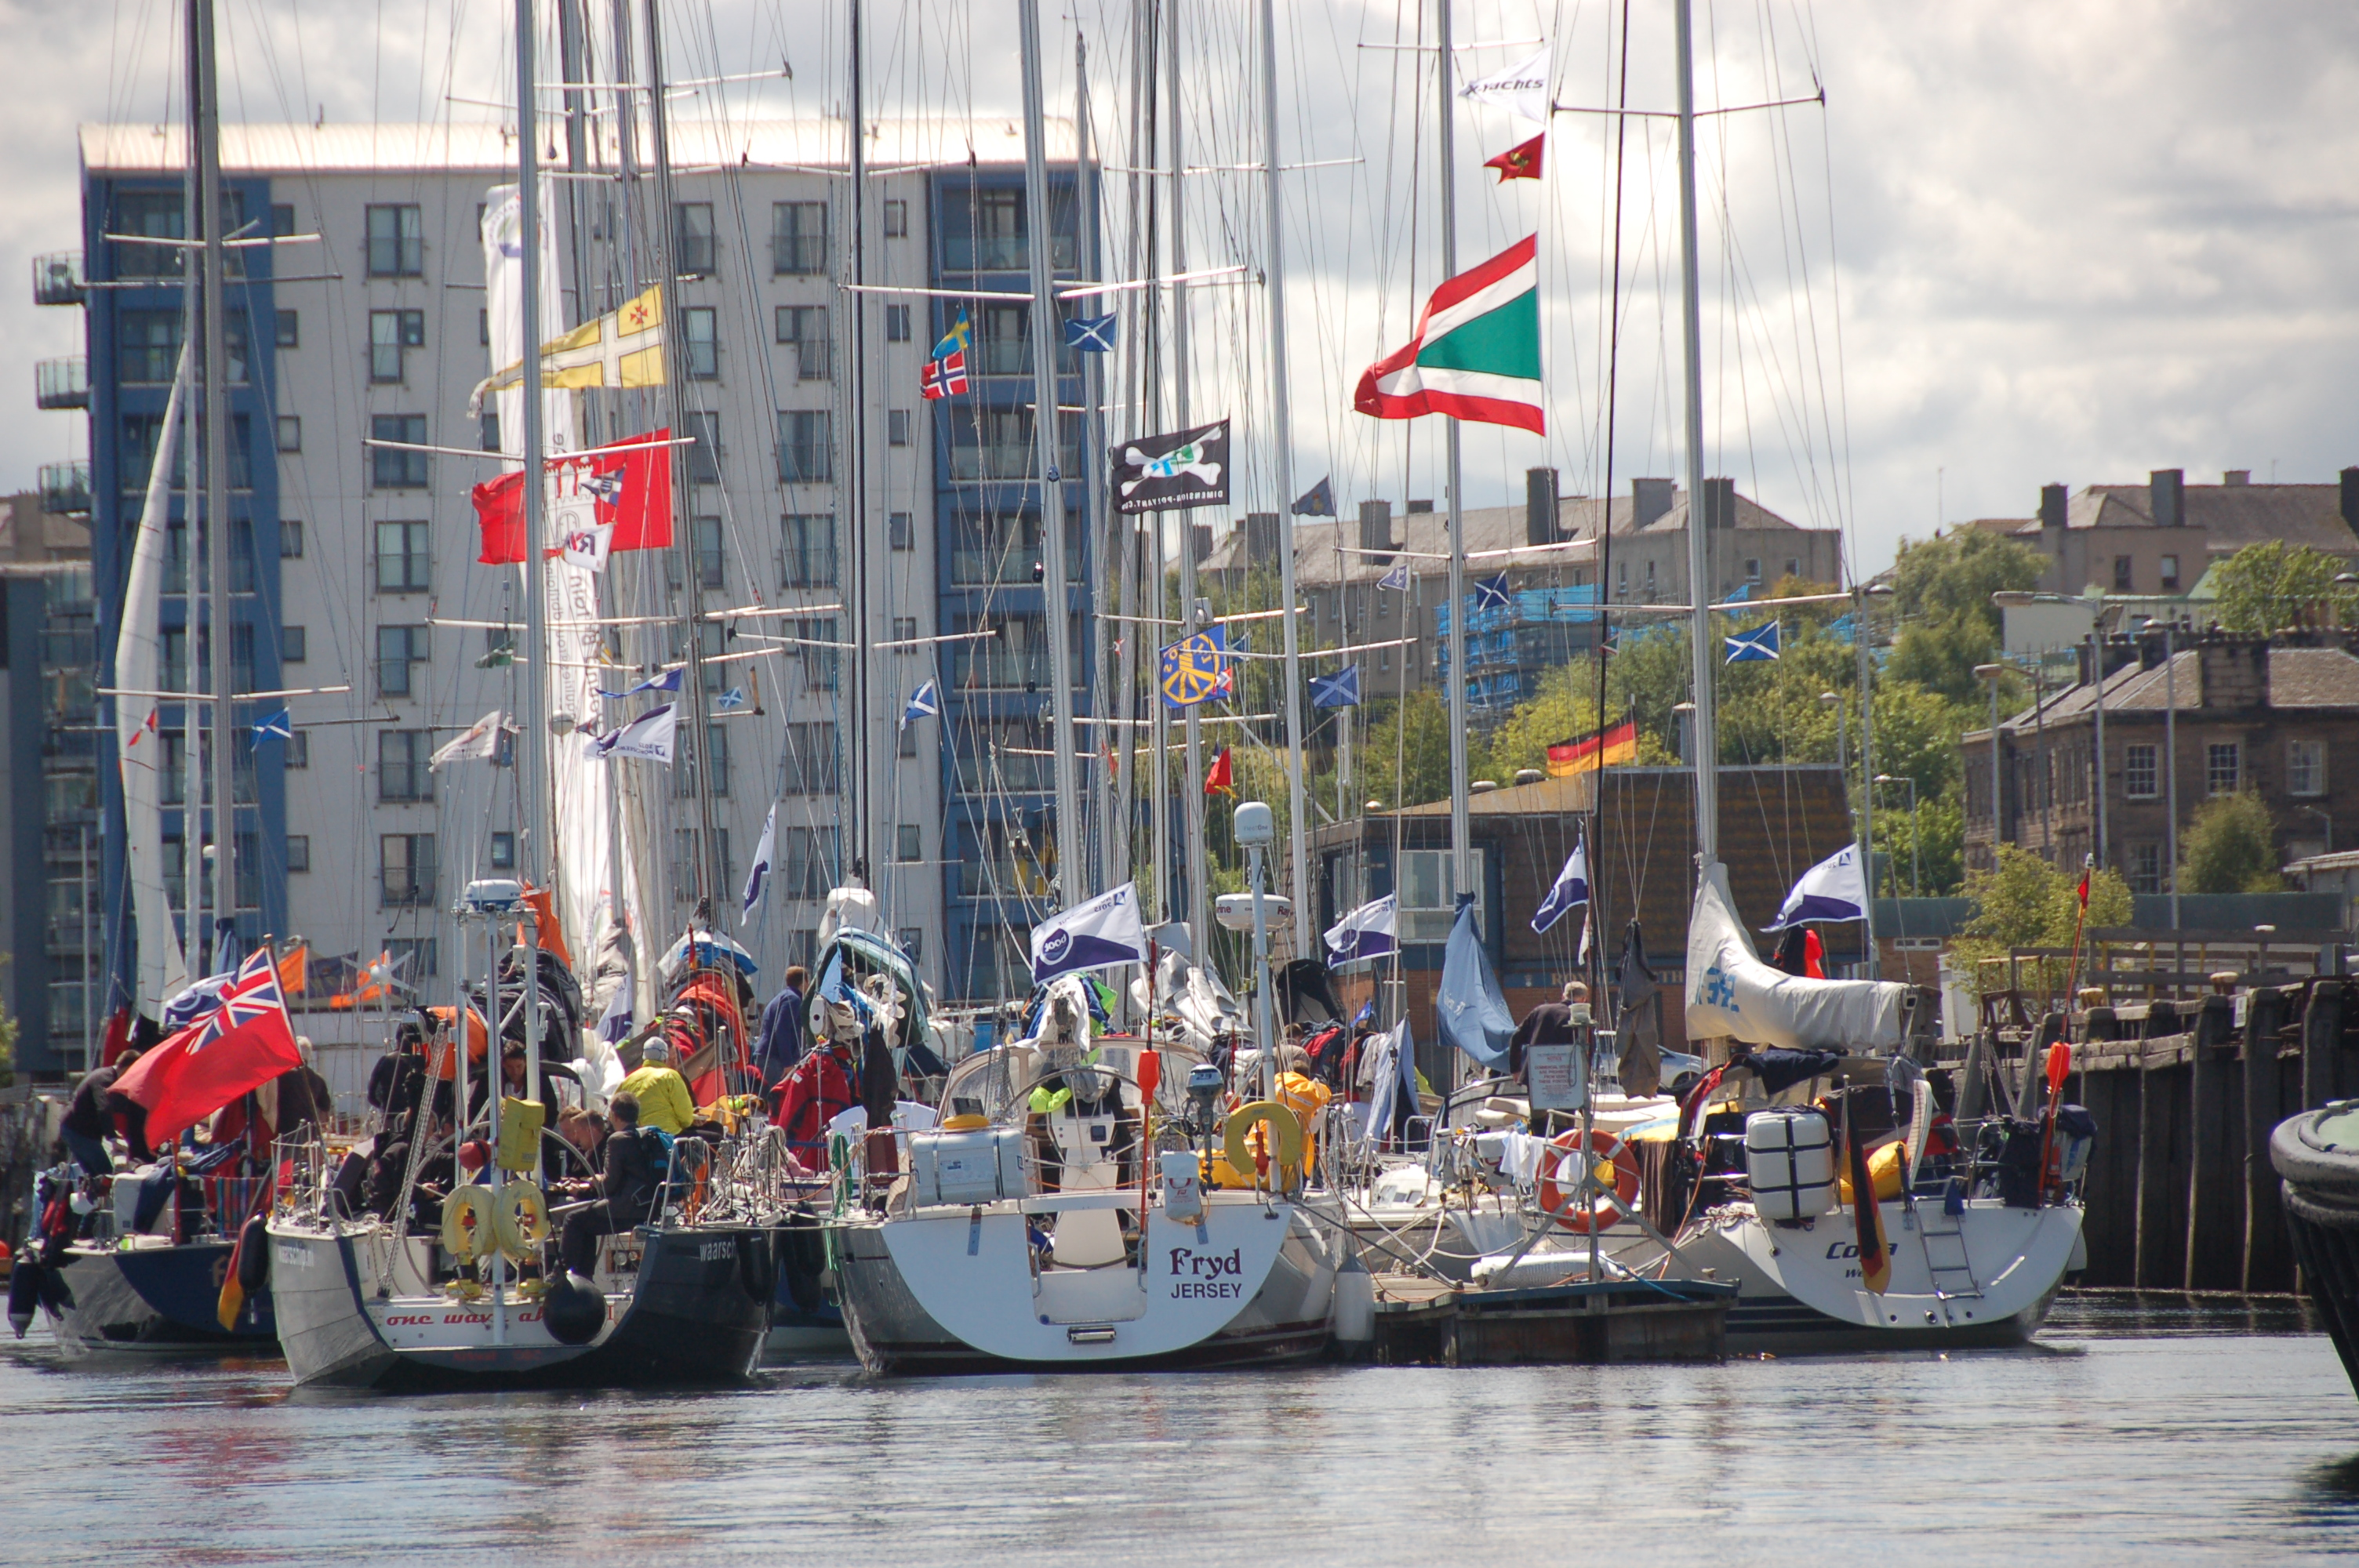 The pontoons are busy and colourful - photo by Hillary Sillitto